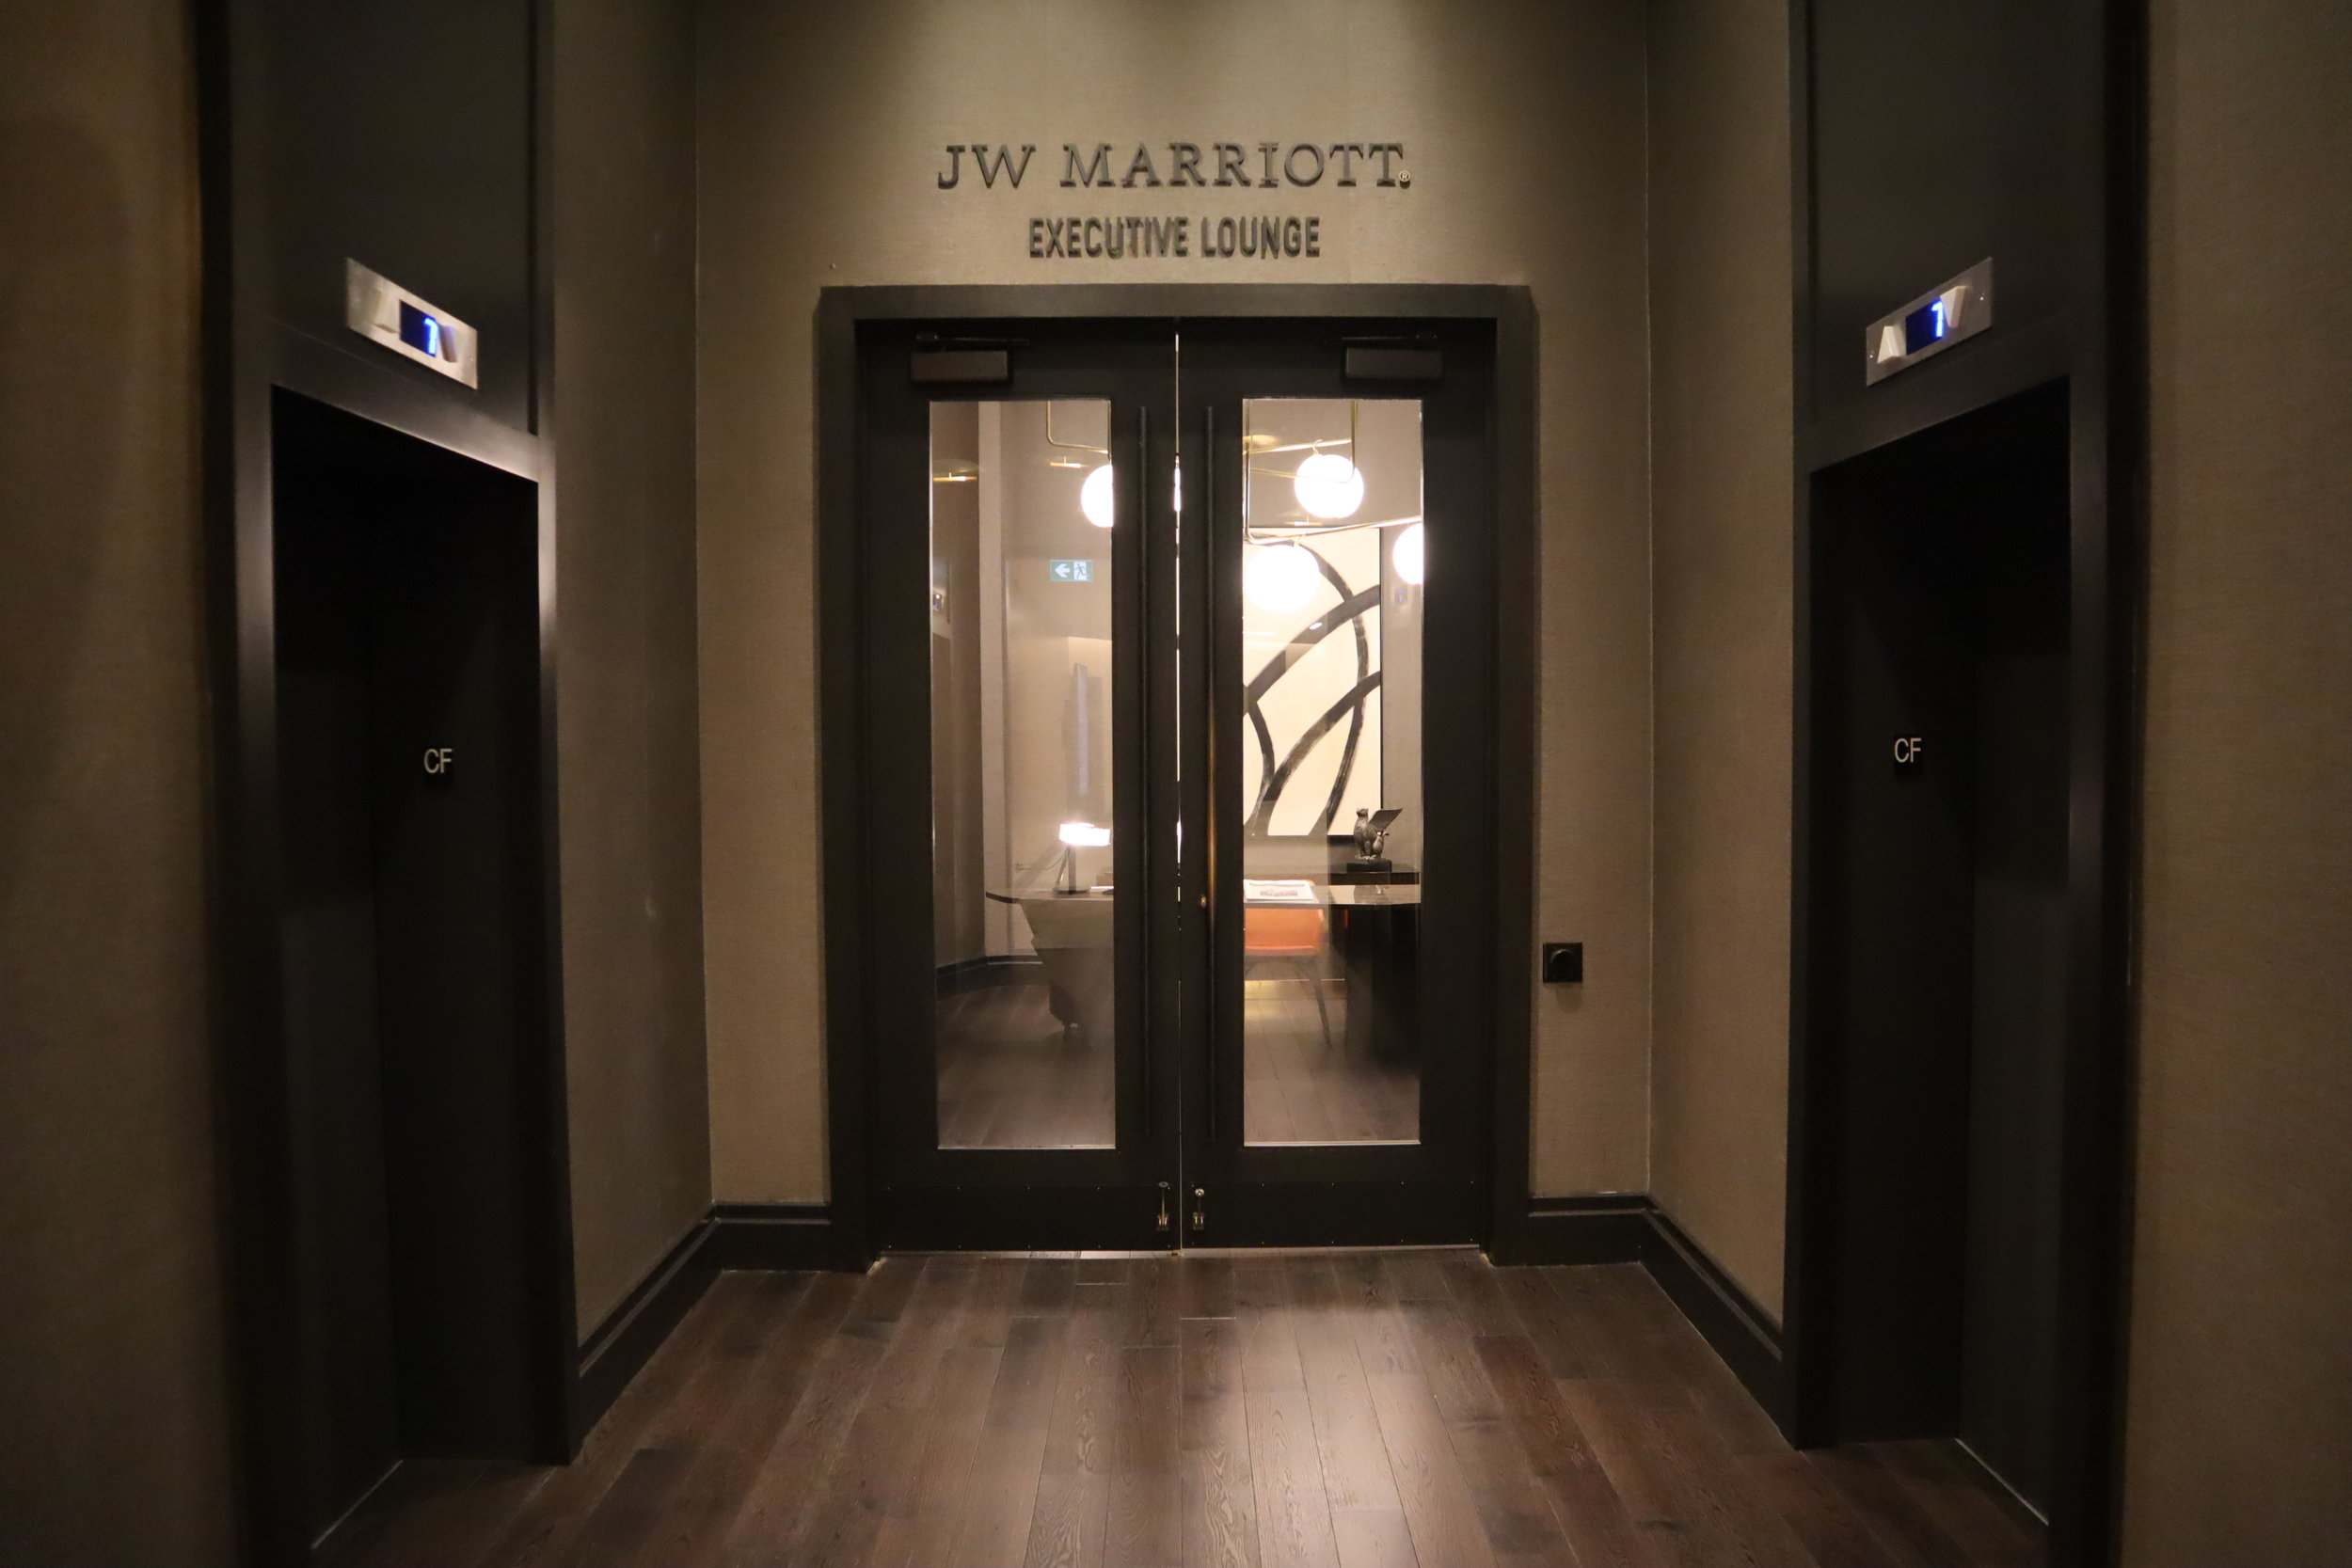 JW Marriott Parq Vancouver – Executive Lounge entrance